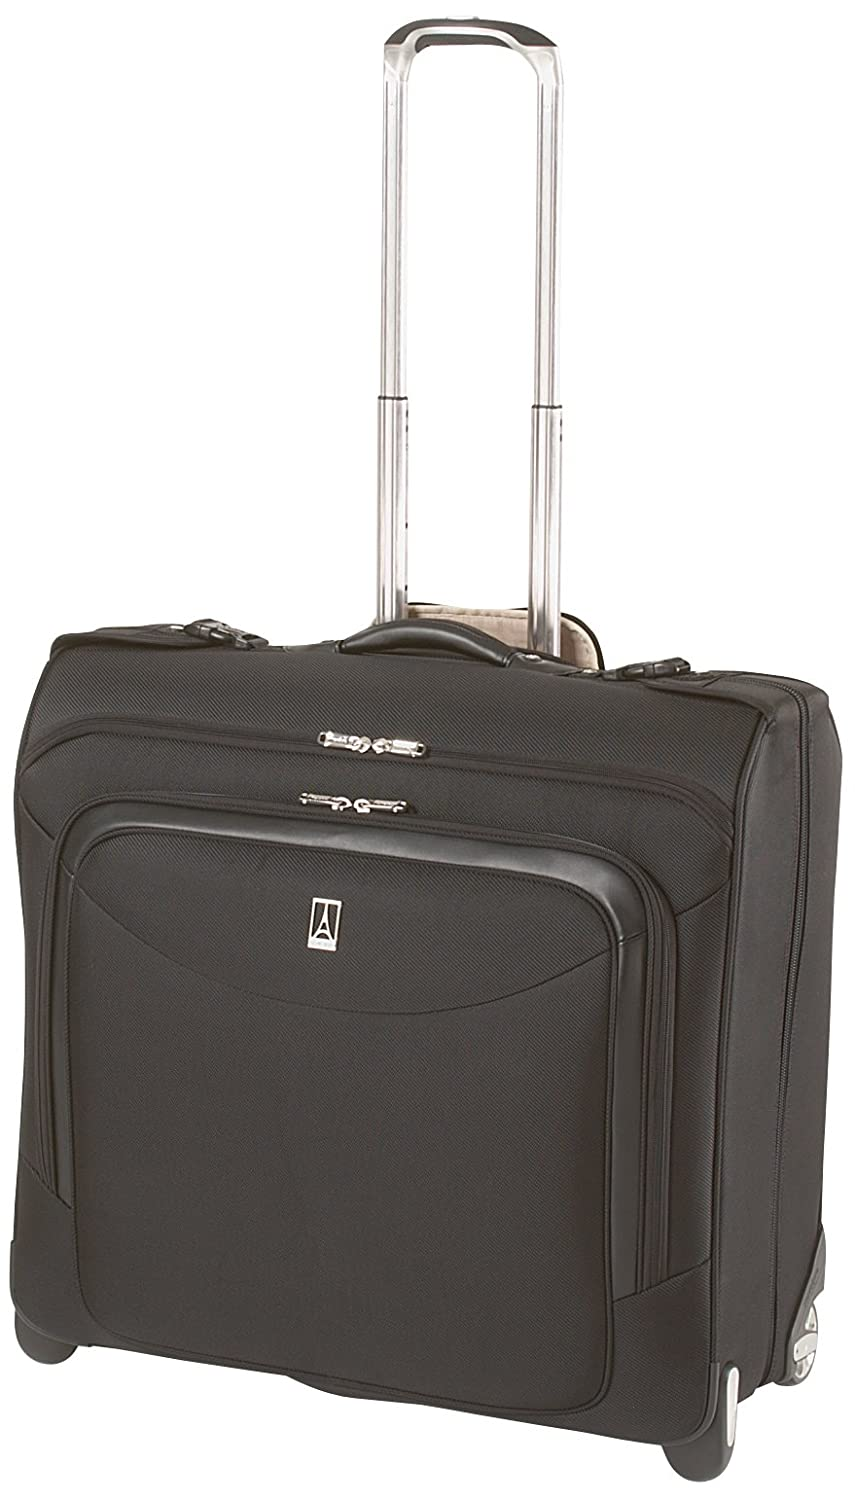 7a34a3d2a Amazon.com | Travelpro Luggage Platinum Magna 50 Inch Expandable Rolling  Garment Bag, Siena, One Size | Garment Bags